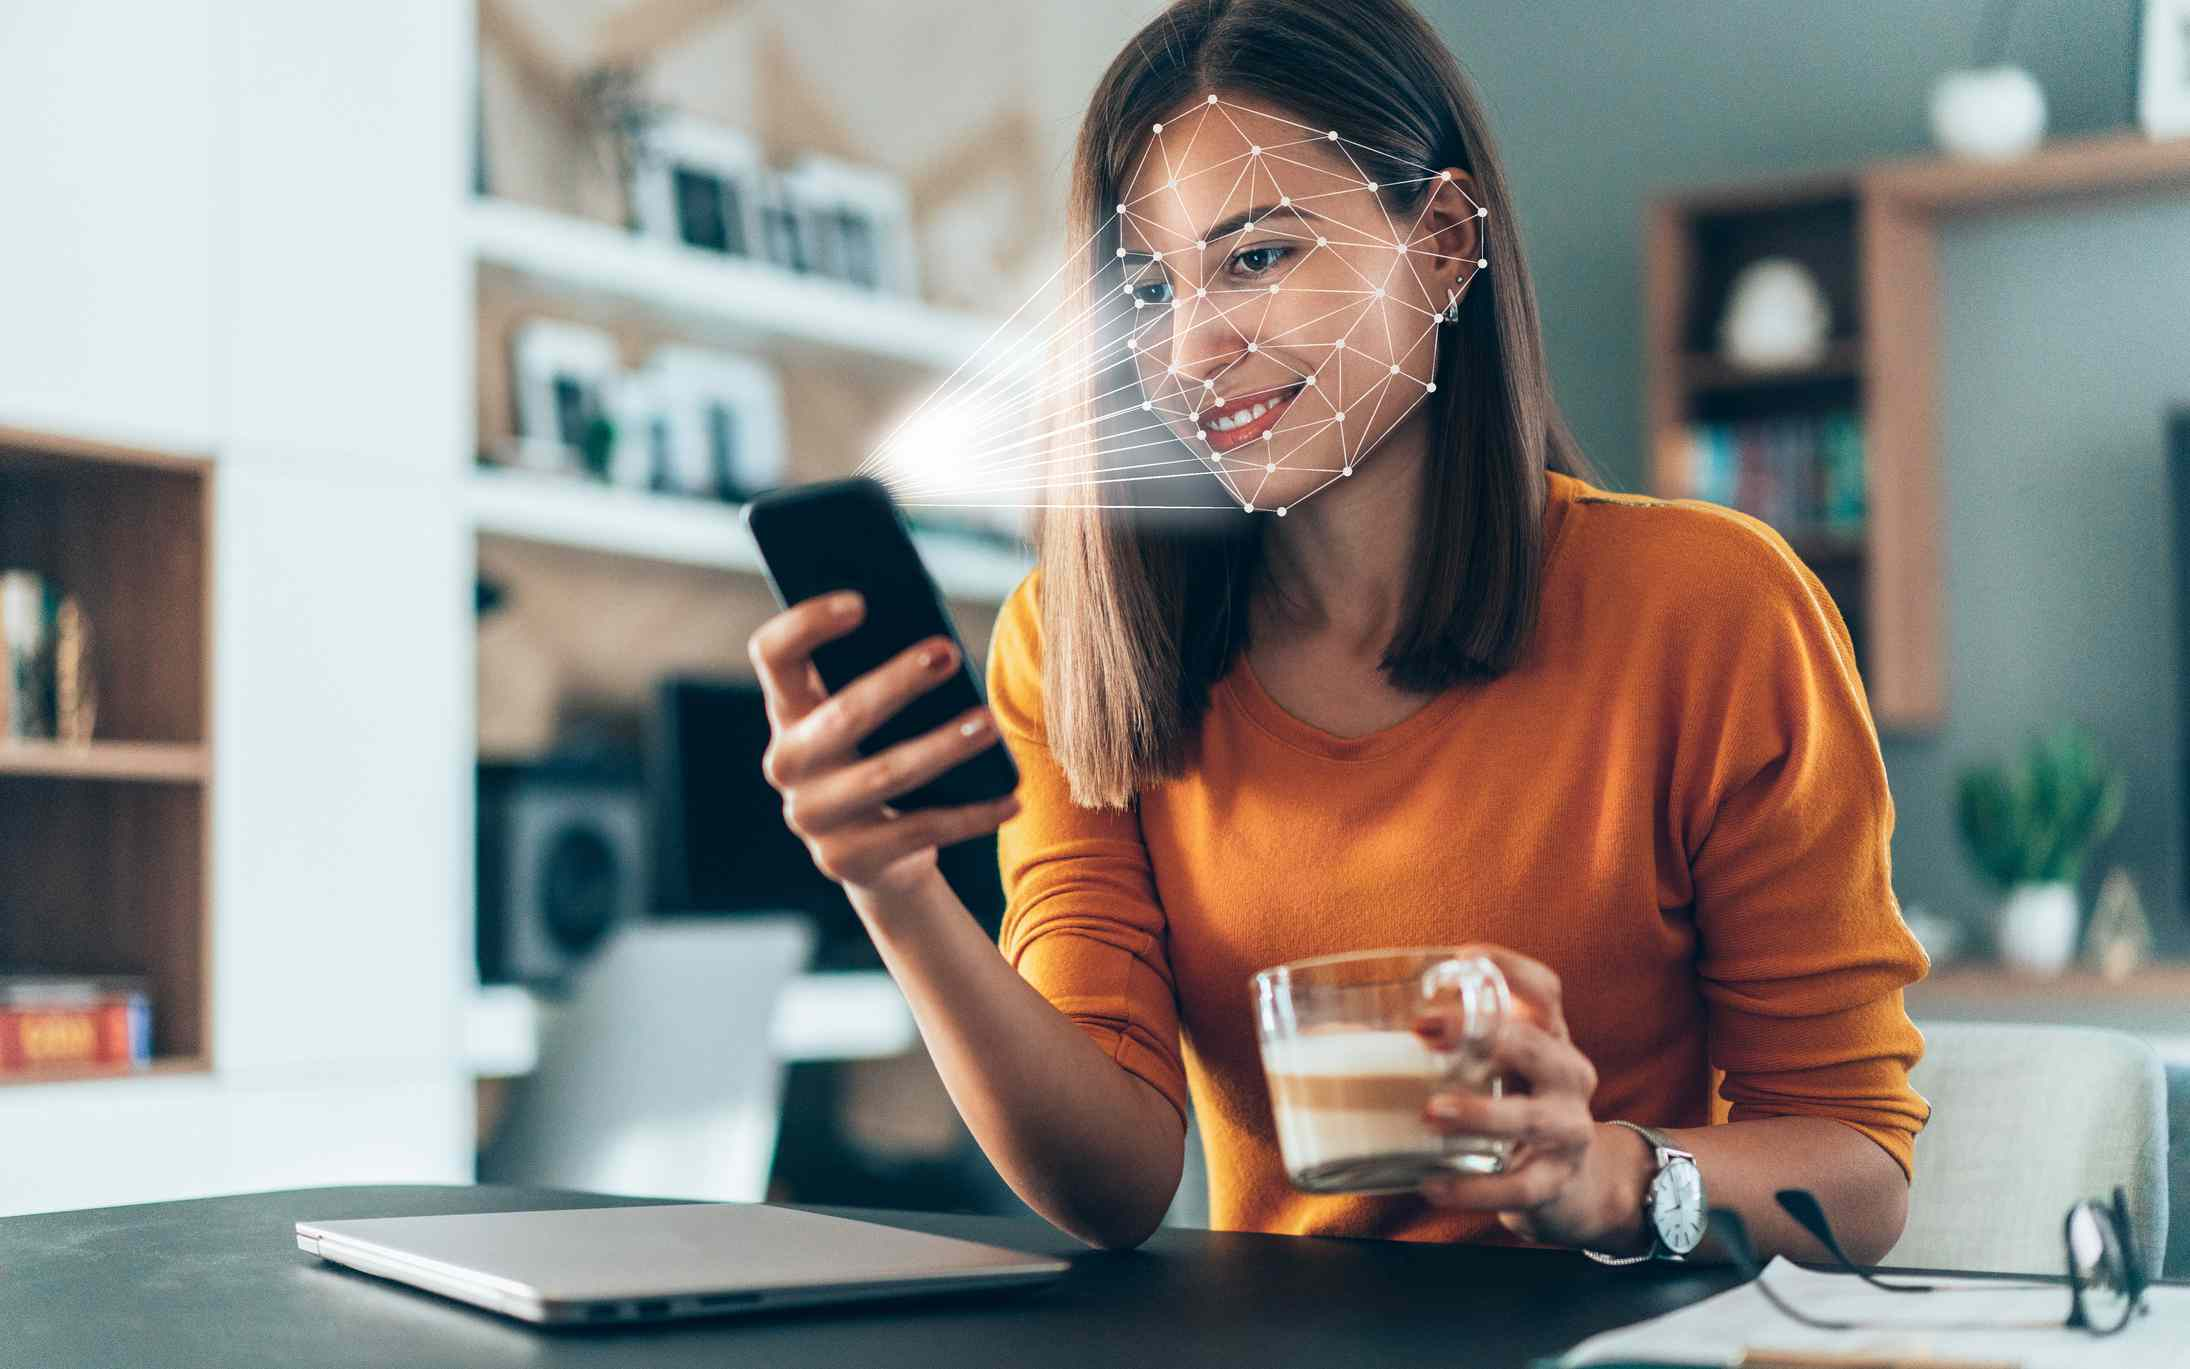 Someone using a biometric face scanner on a smartphone while sitting at a kitchen counter holding a cup of coffee.